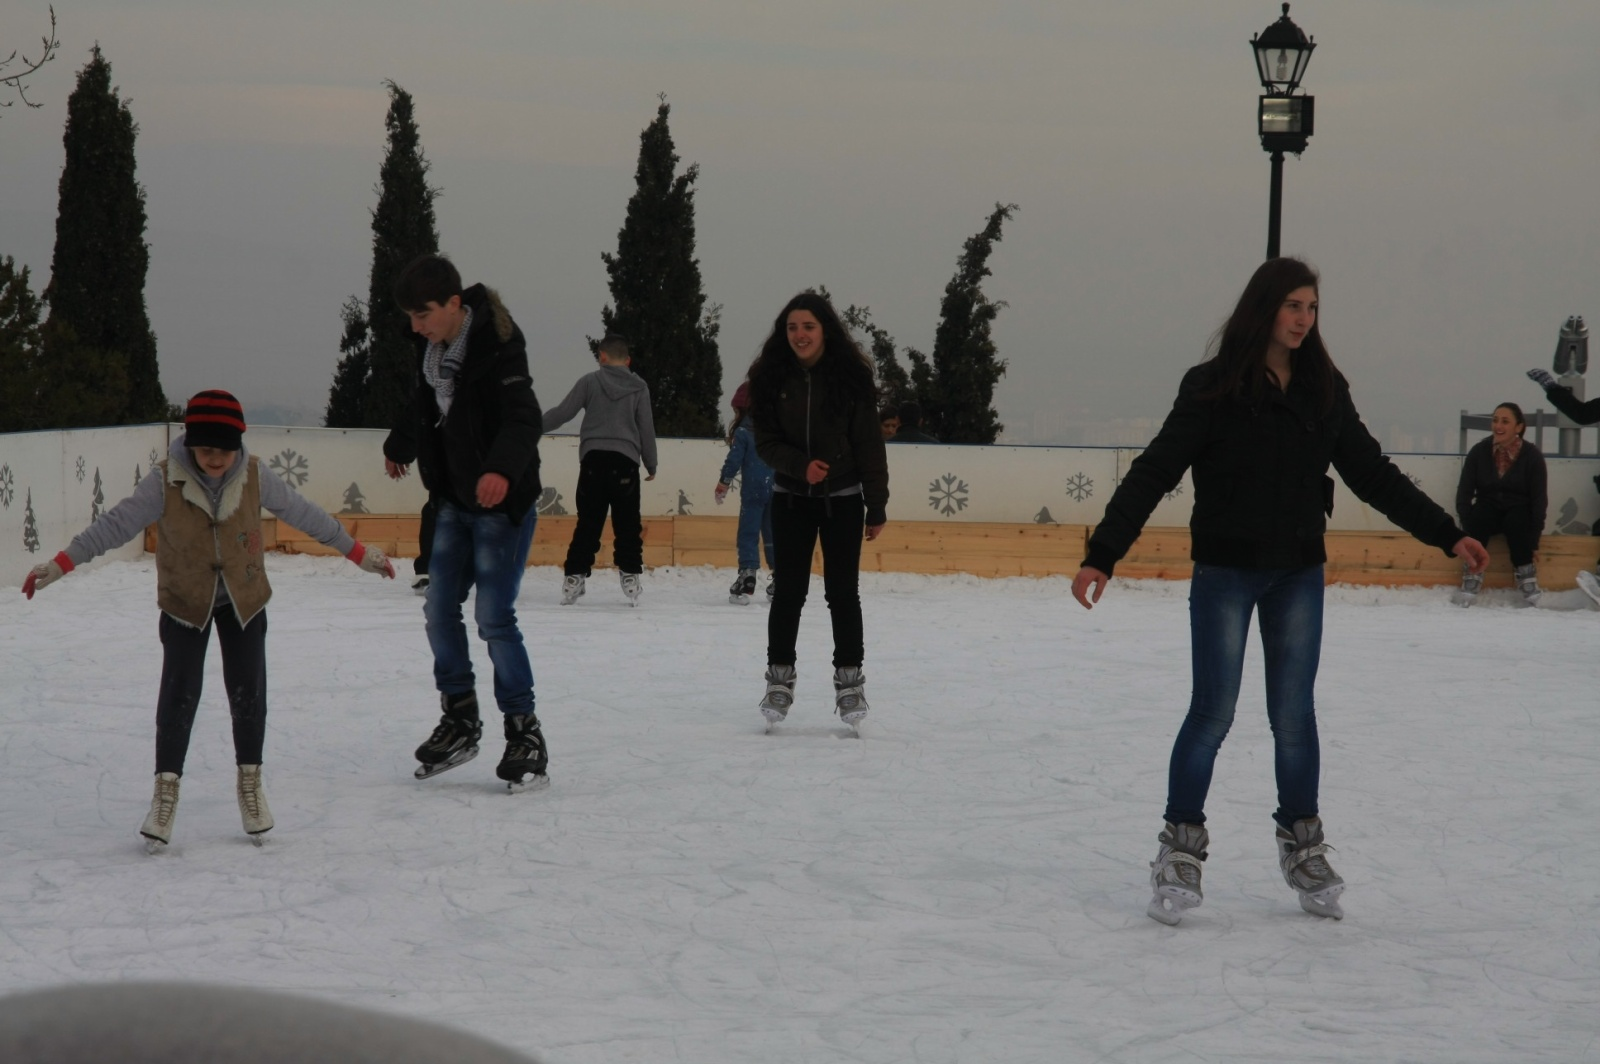 Not enough snow for snowboarding this year, but at least people can ice skate